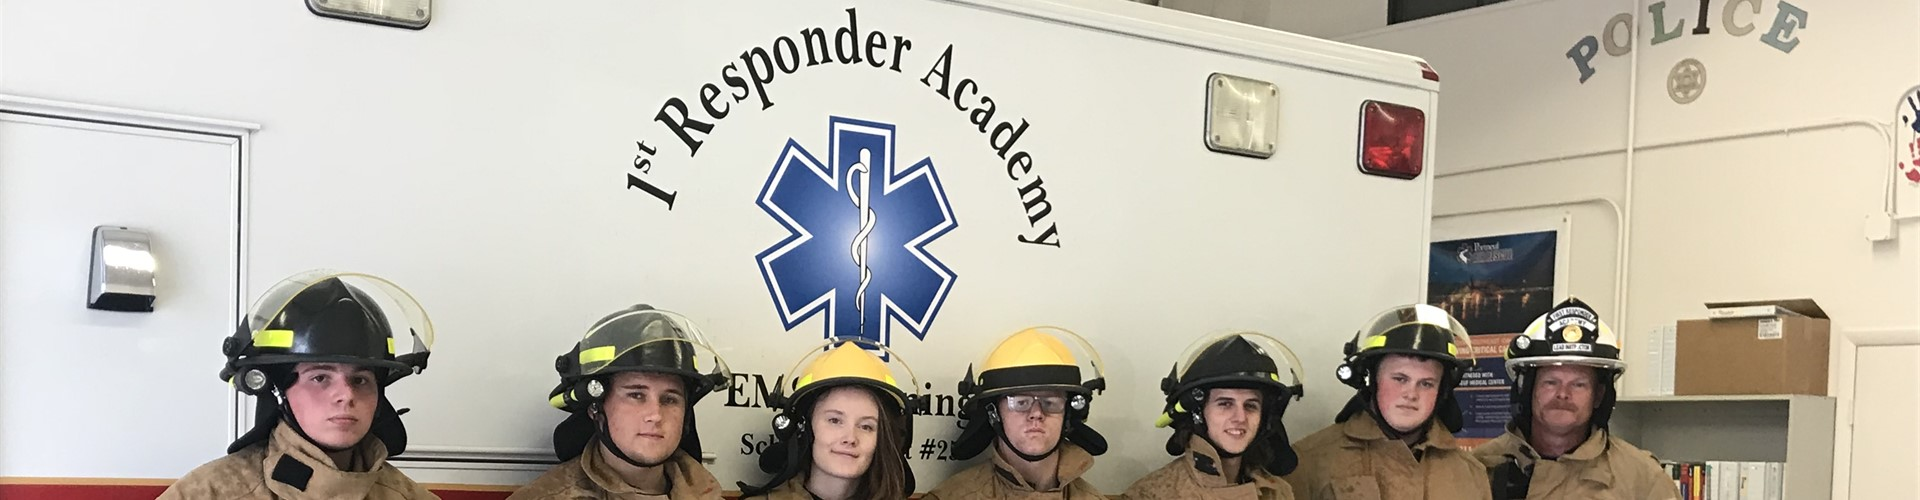 First responders; Fire Safety students,  Instructor Mark Brood.